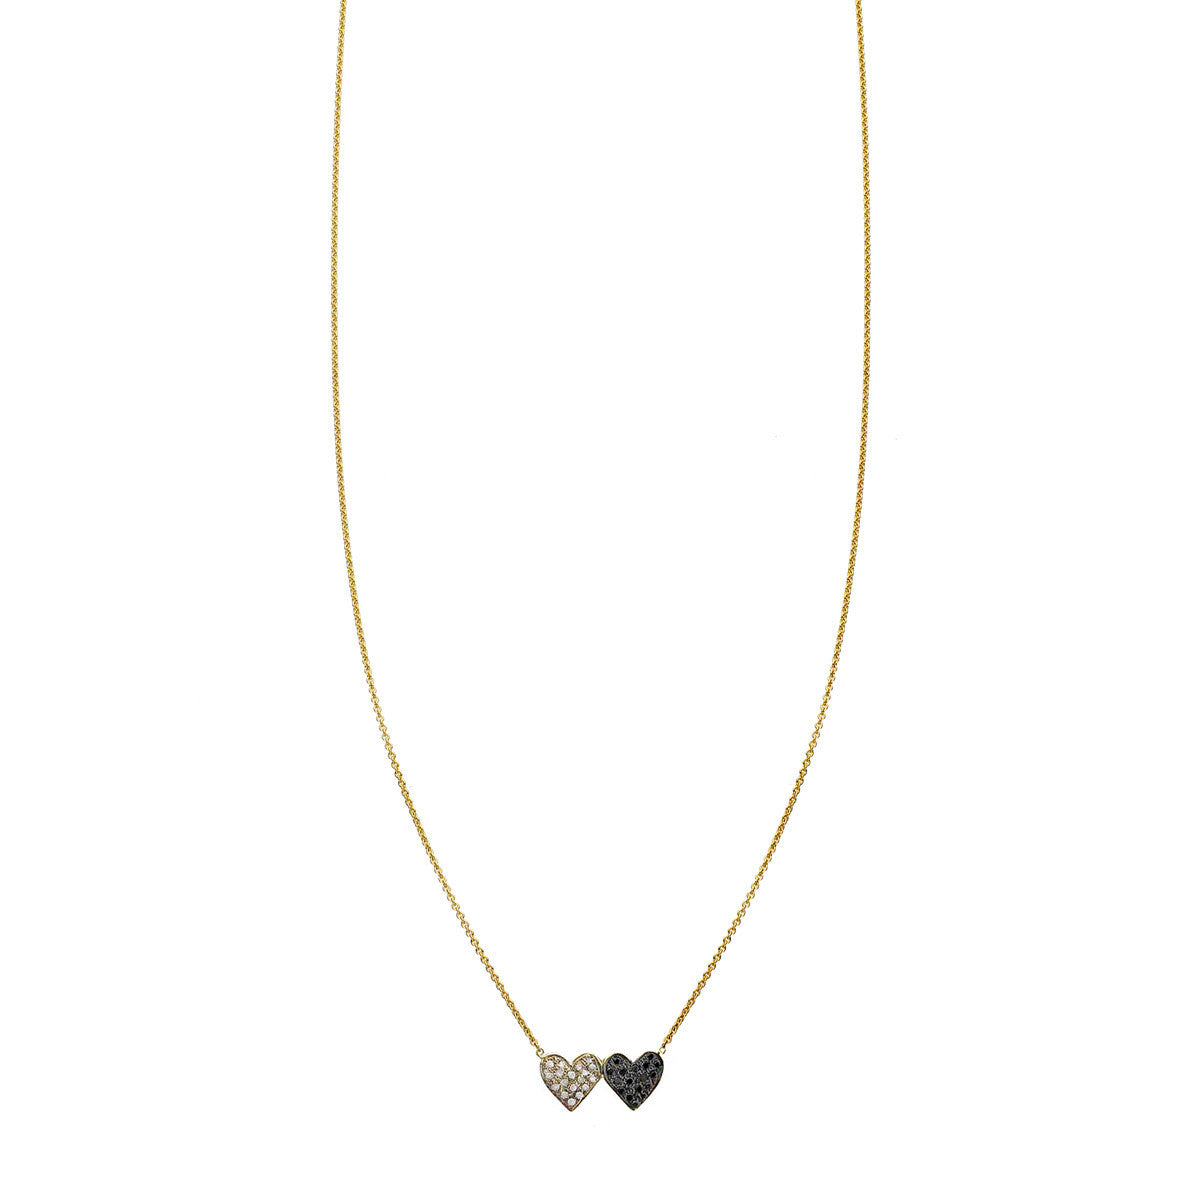 White and black diamond double heart charm necklace